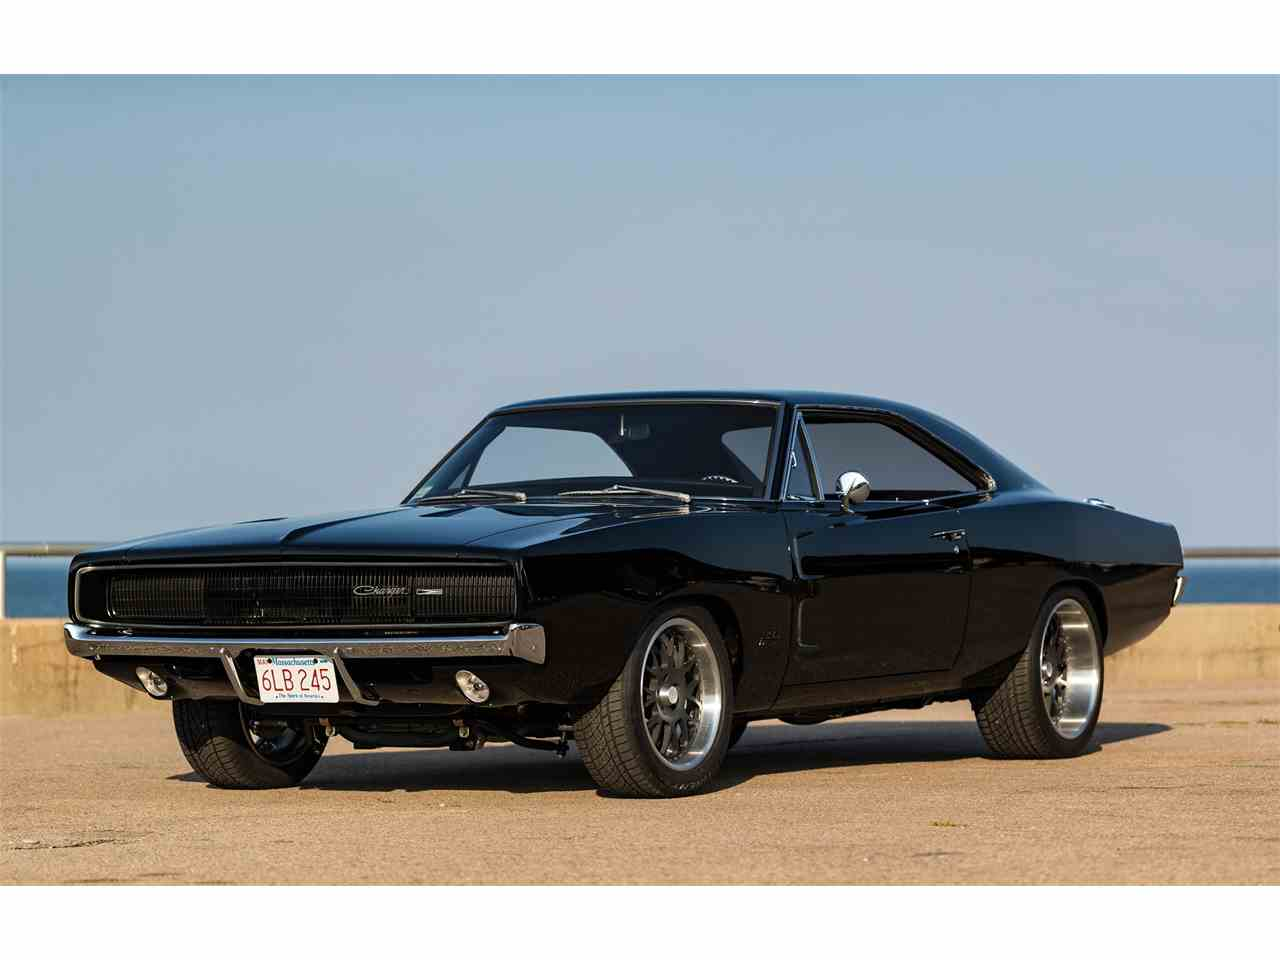 1968 Charger For Sale >> 1968 Dodge Charger for Sale | ClassicCars.com | CC-1052002